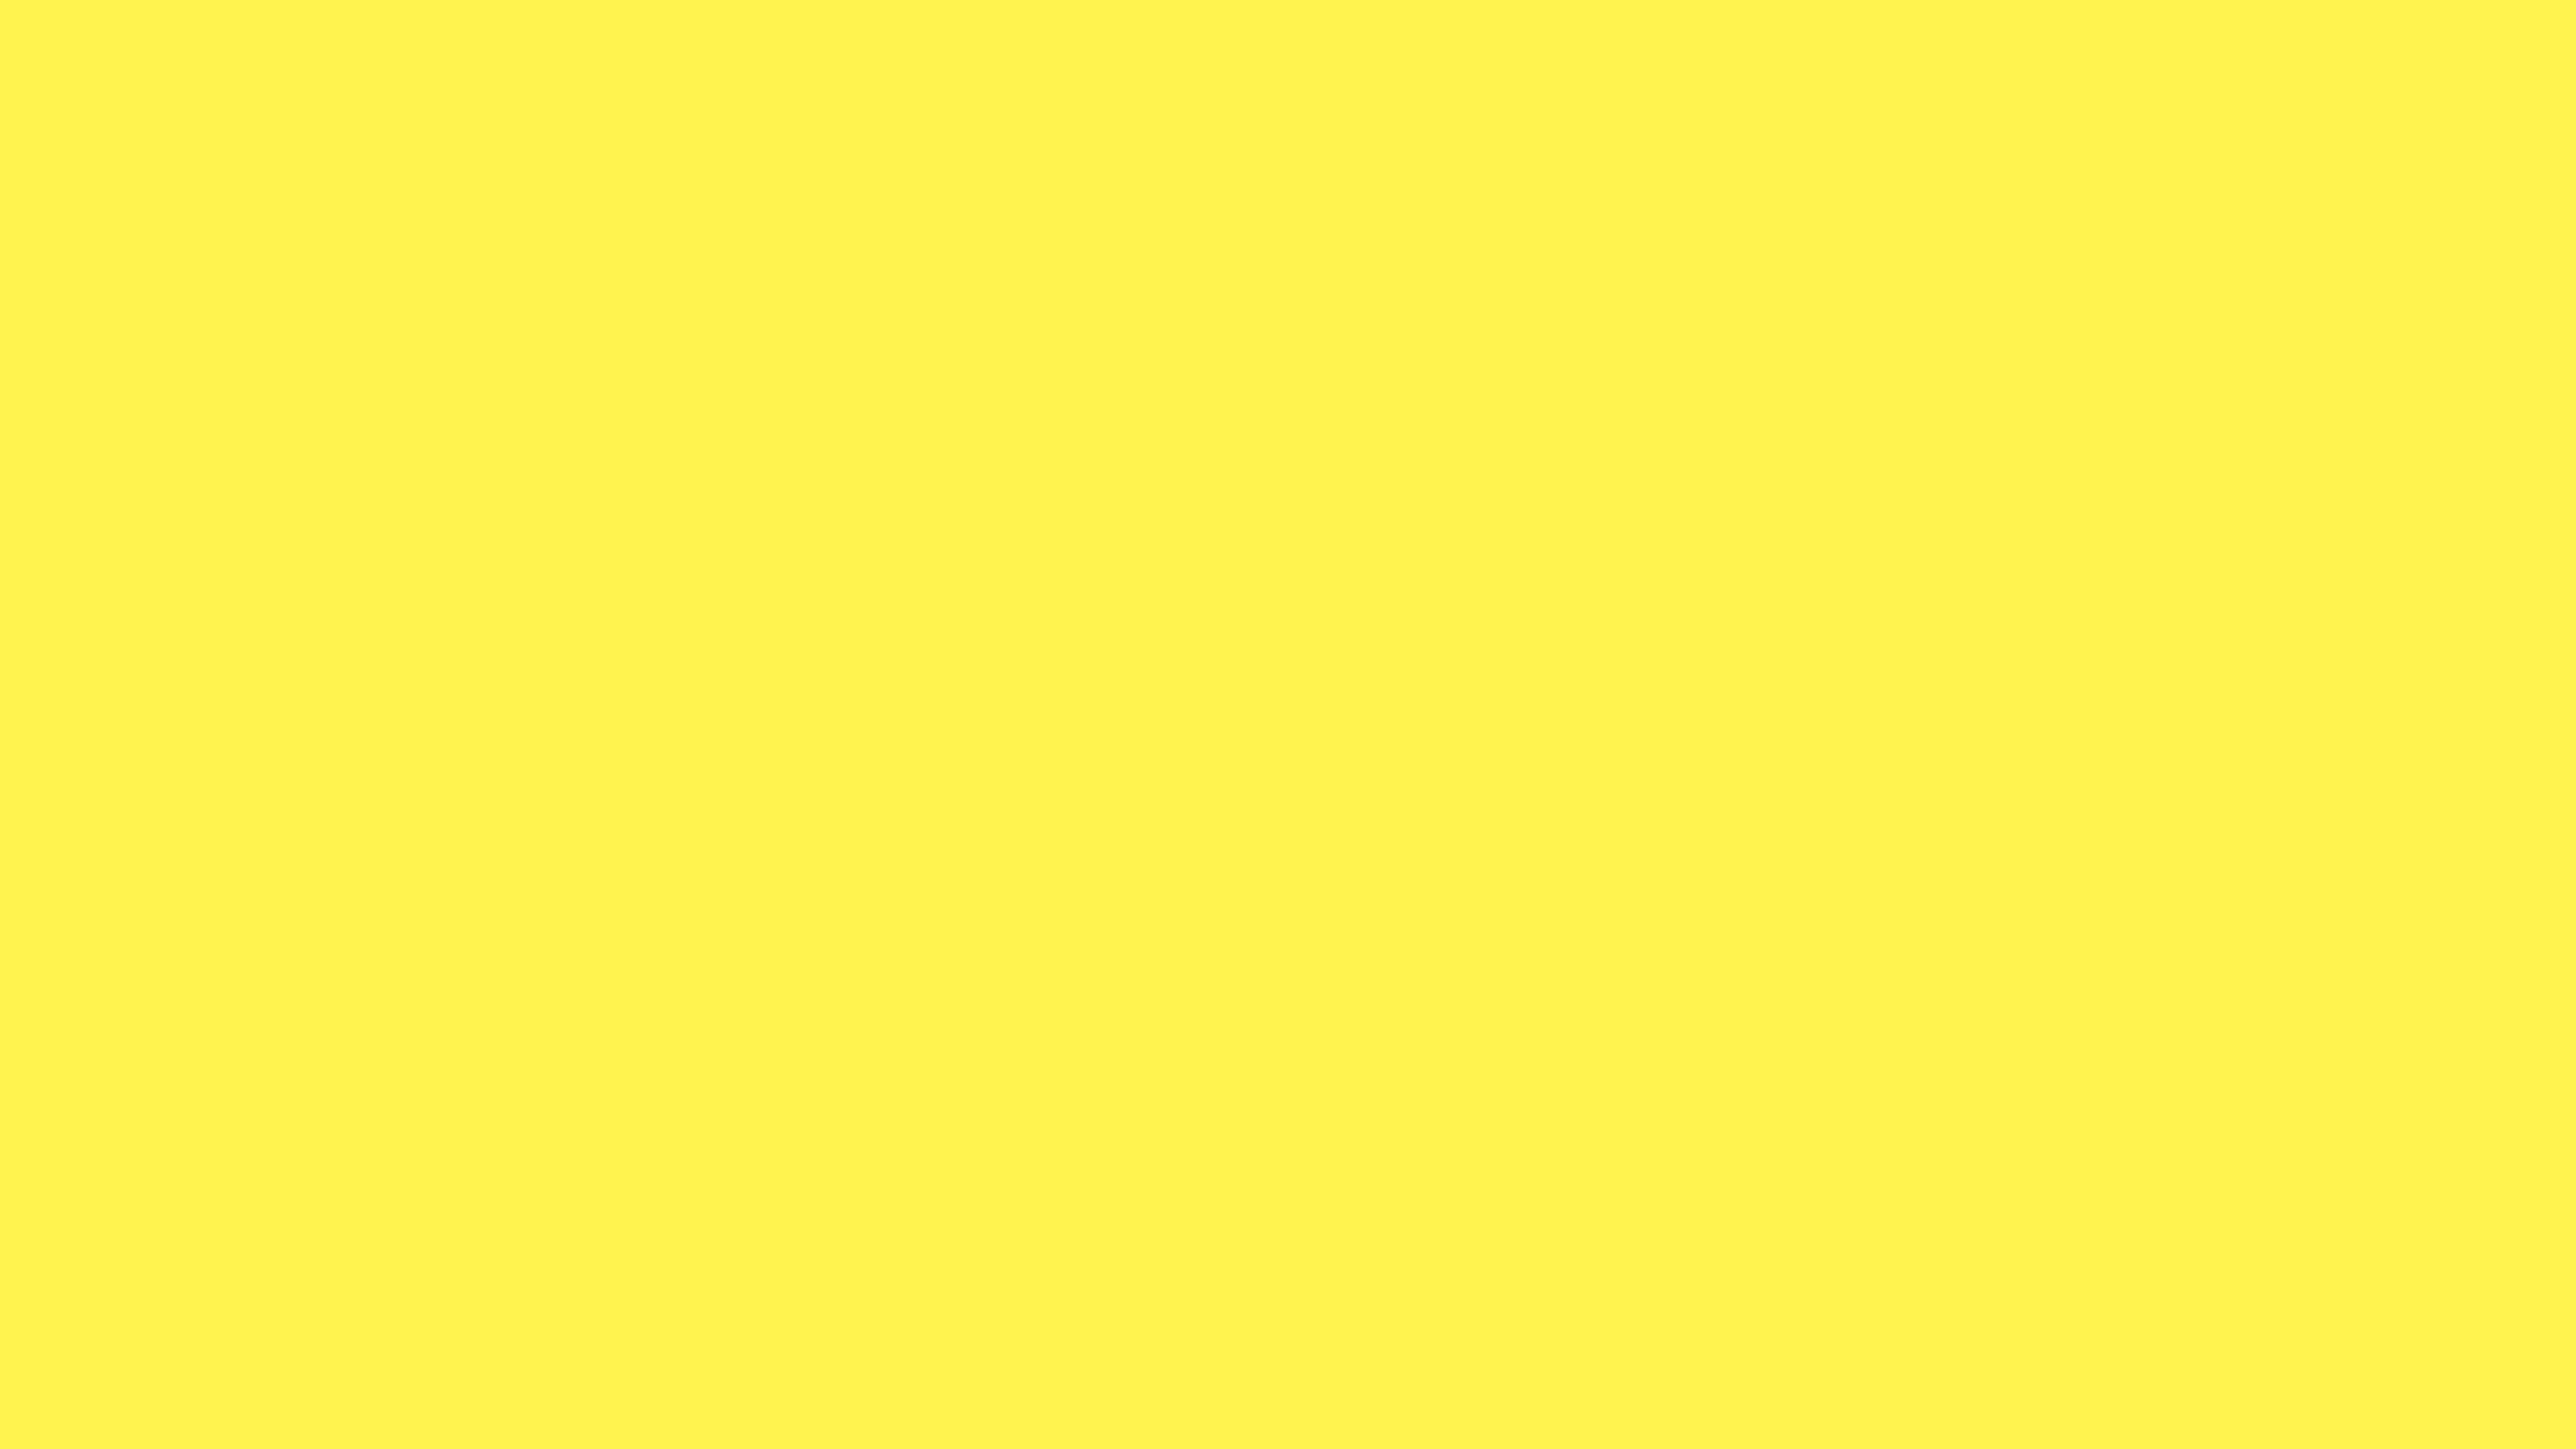 3840x2160 Lemon Yellow Solid Color Background